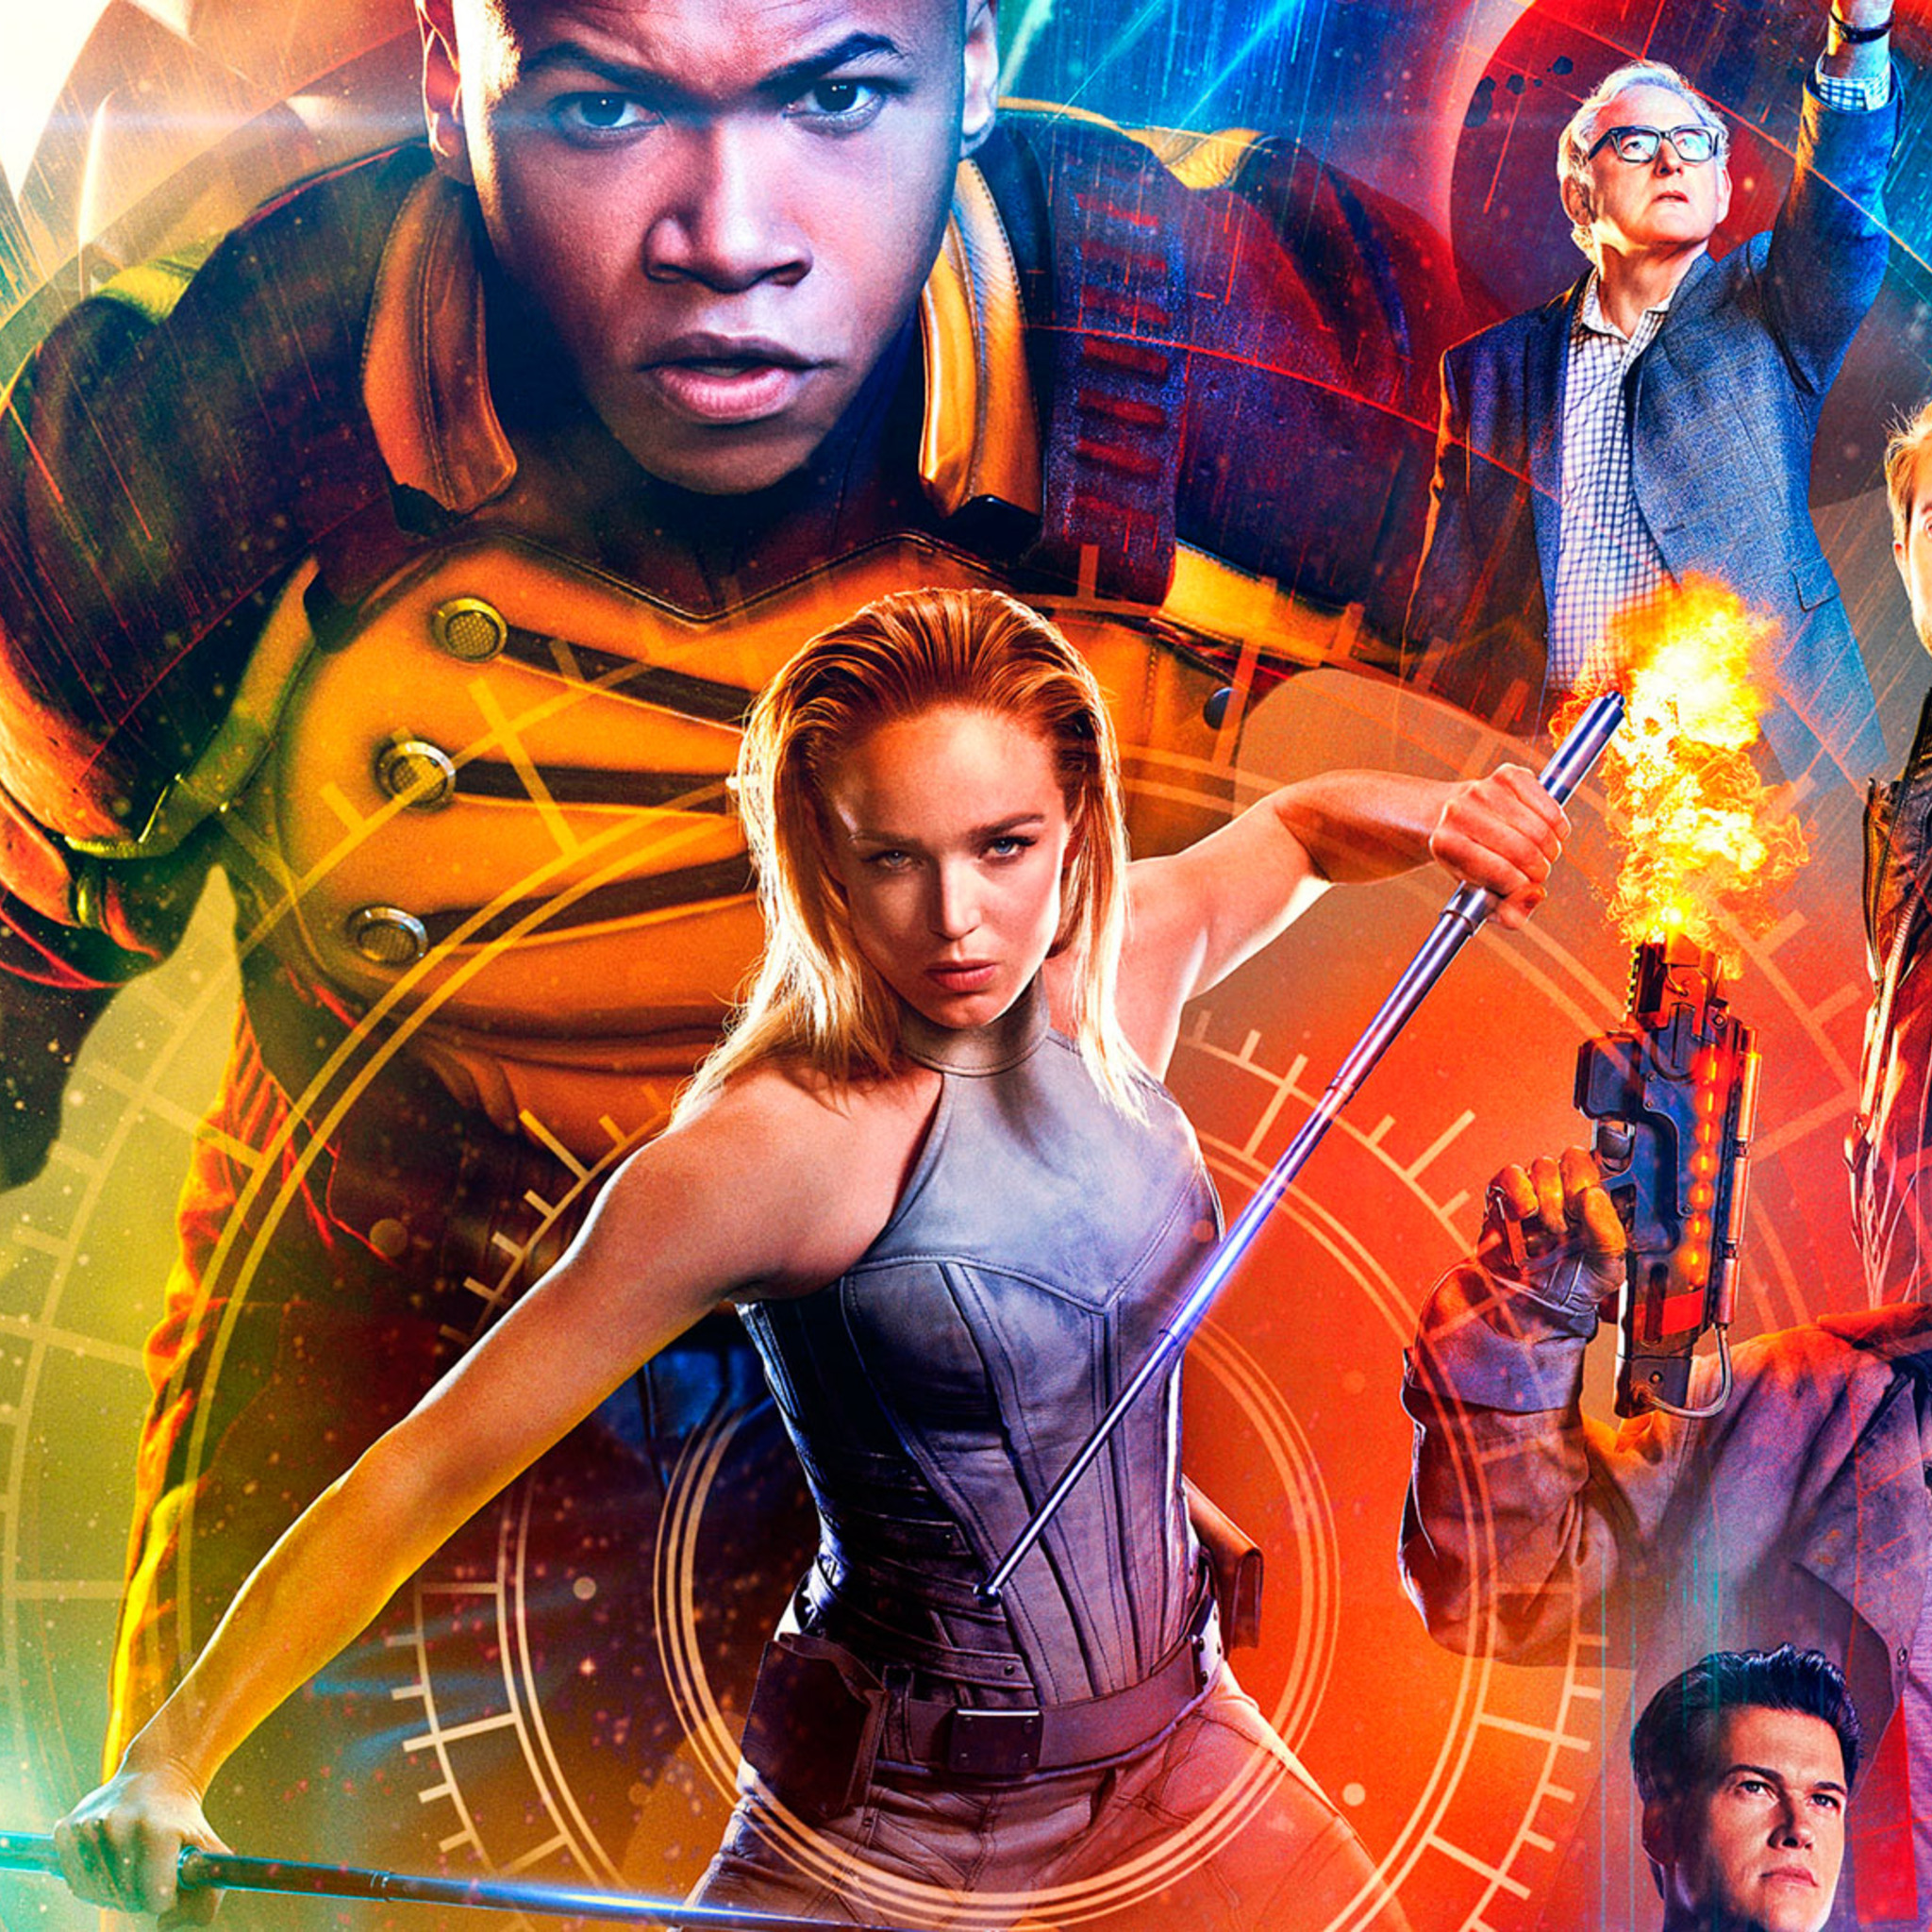 2048x2048 Legends Of Tomorrow Season 2 HD Ipad Air HD 4k